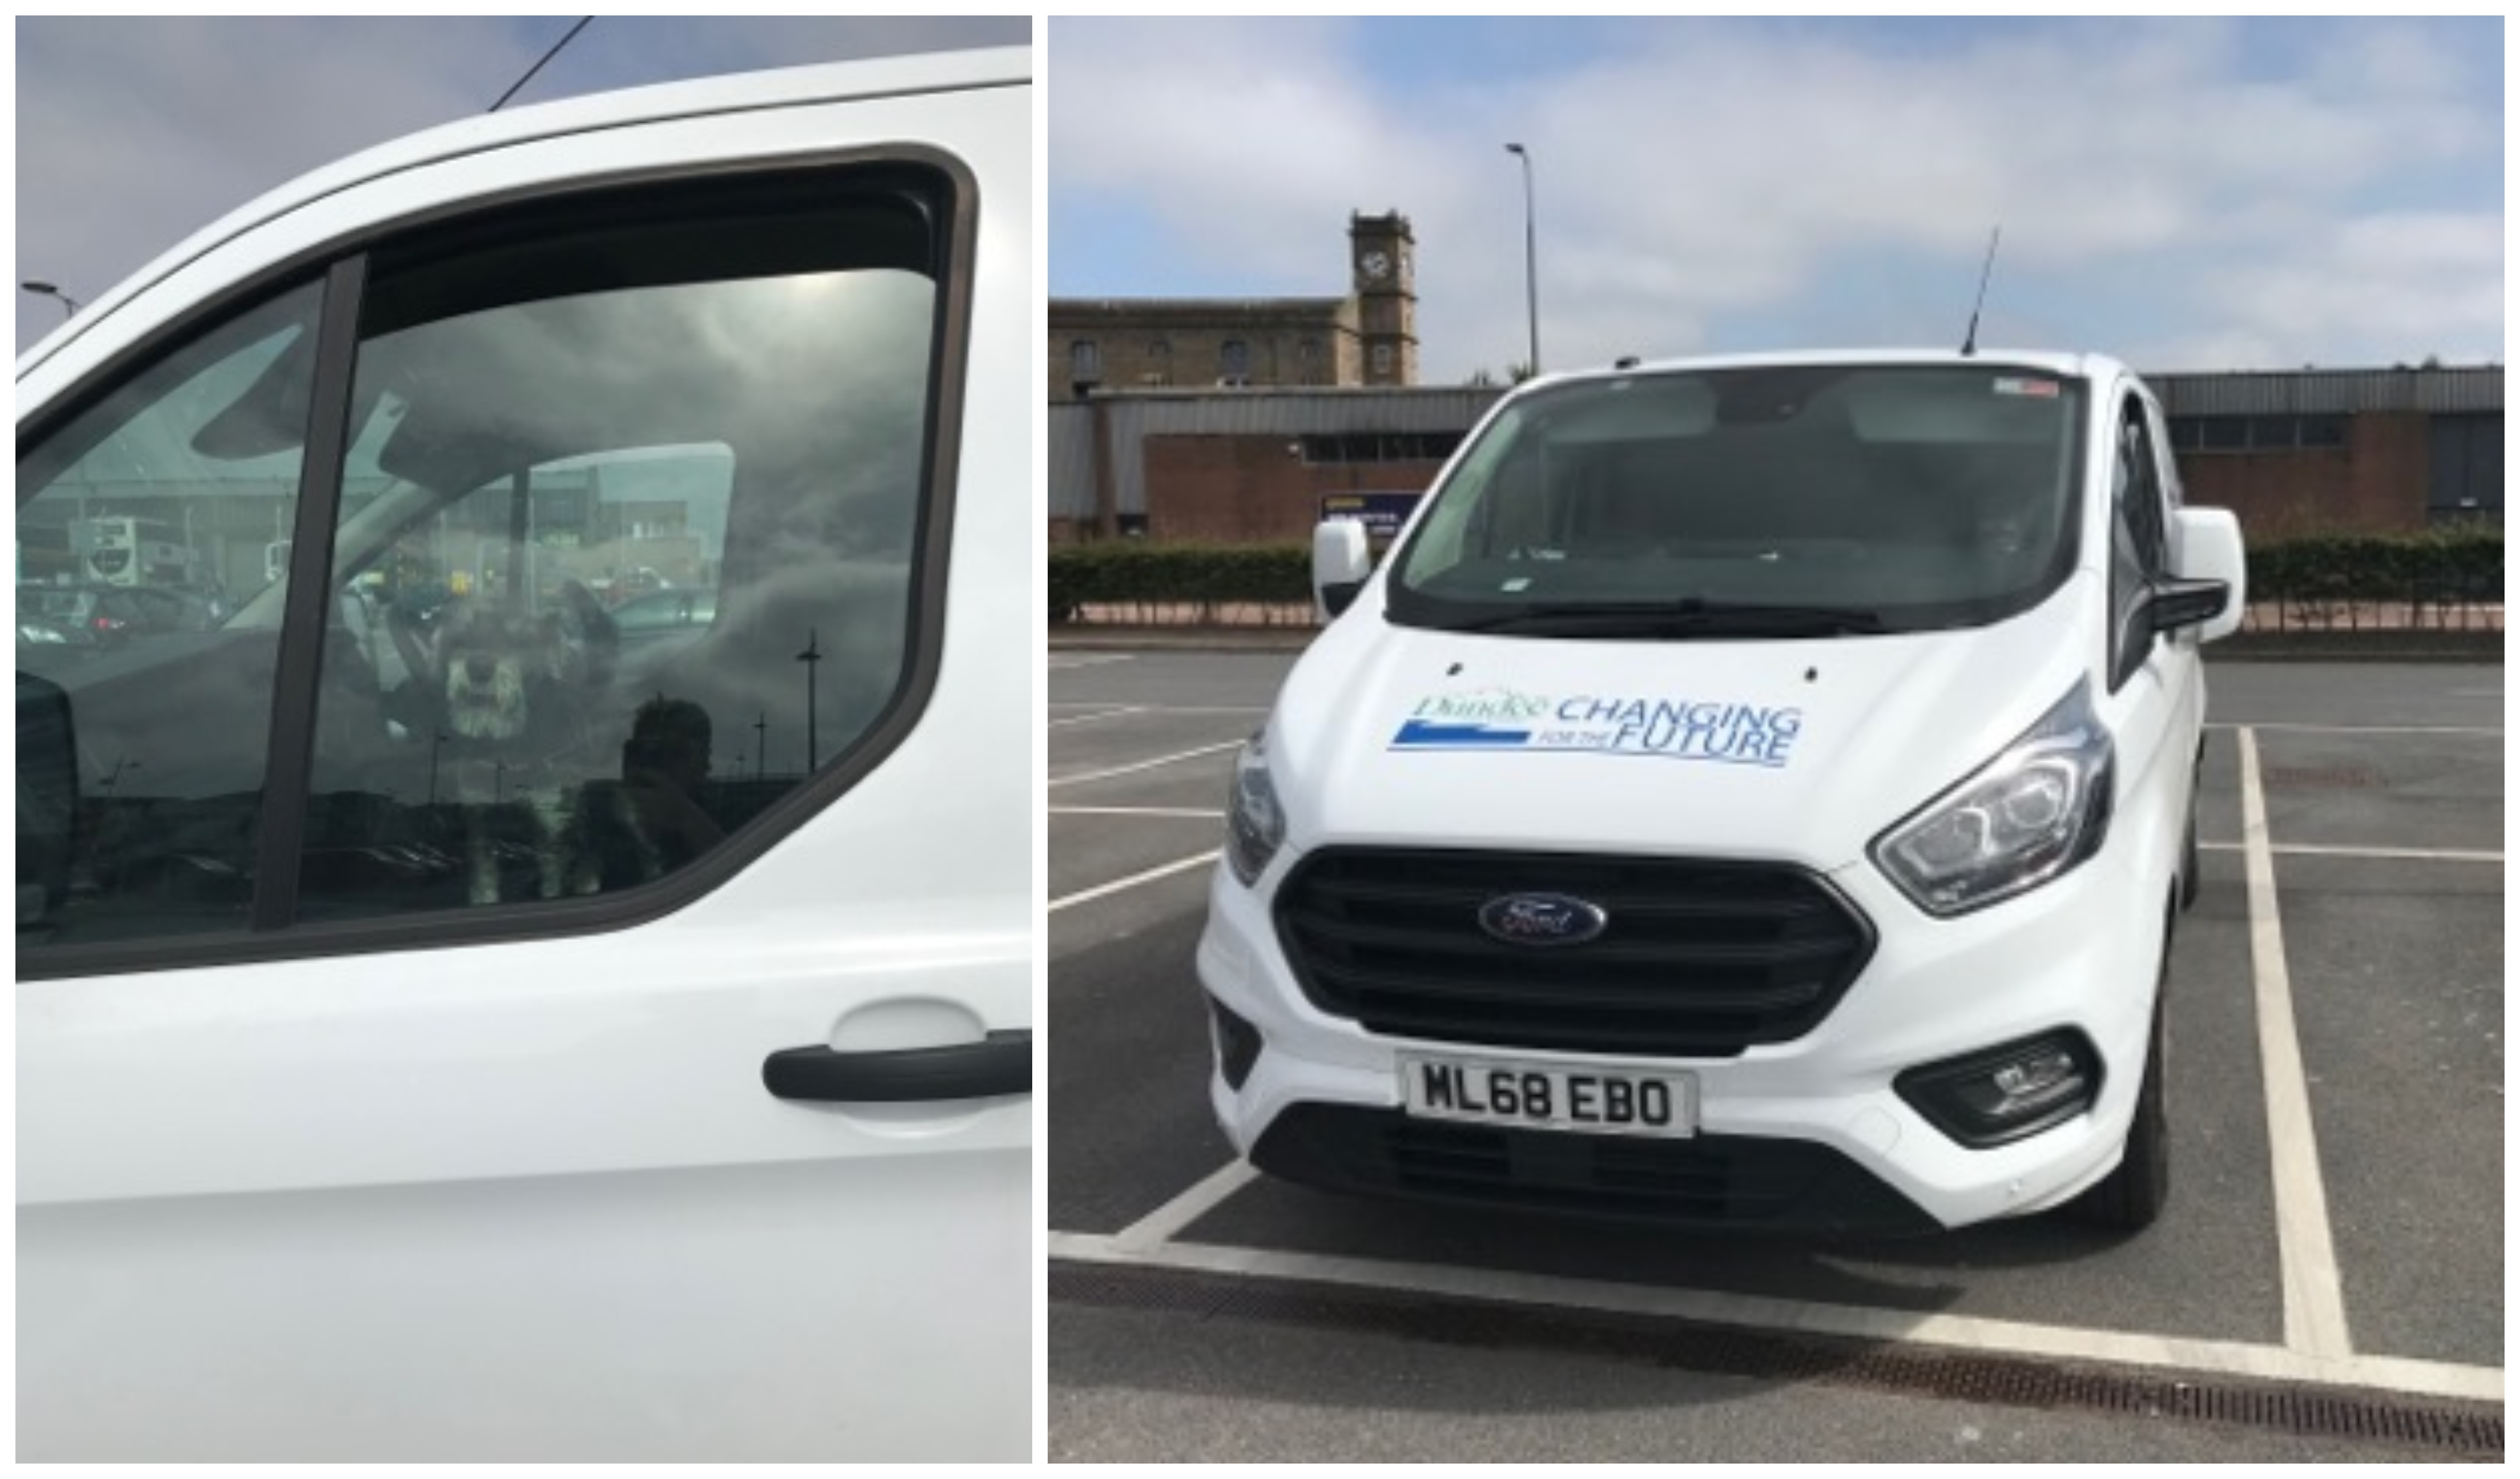 The dogs pictured inside the van parked at Gallagher Retail Park.